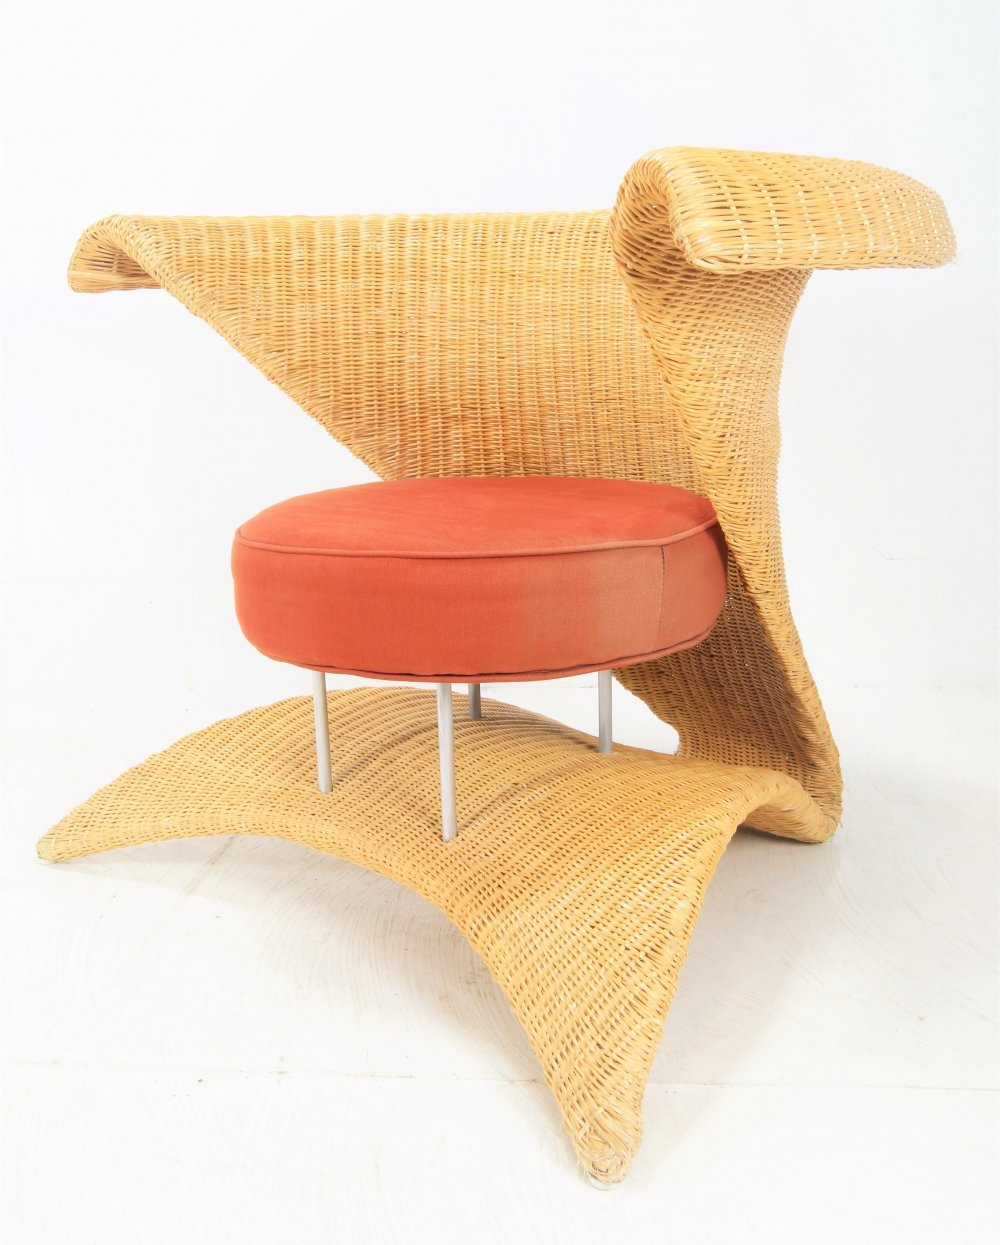 Exclusive Rattan arm chair, 1970s